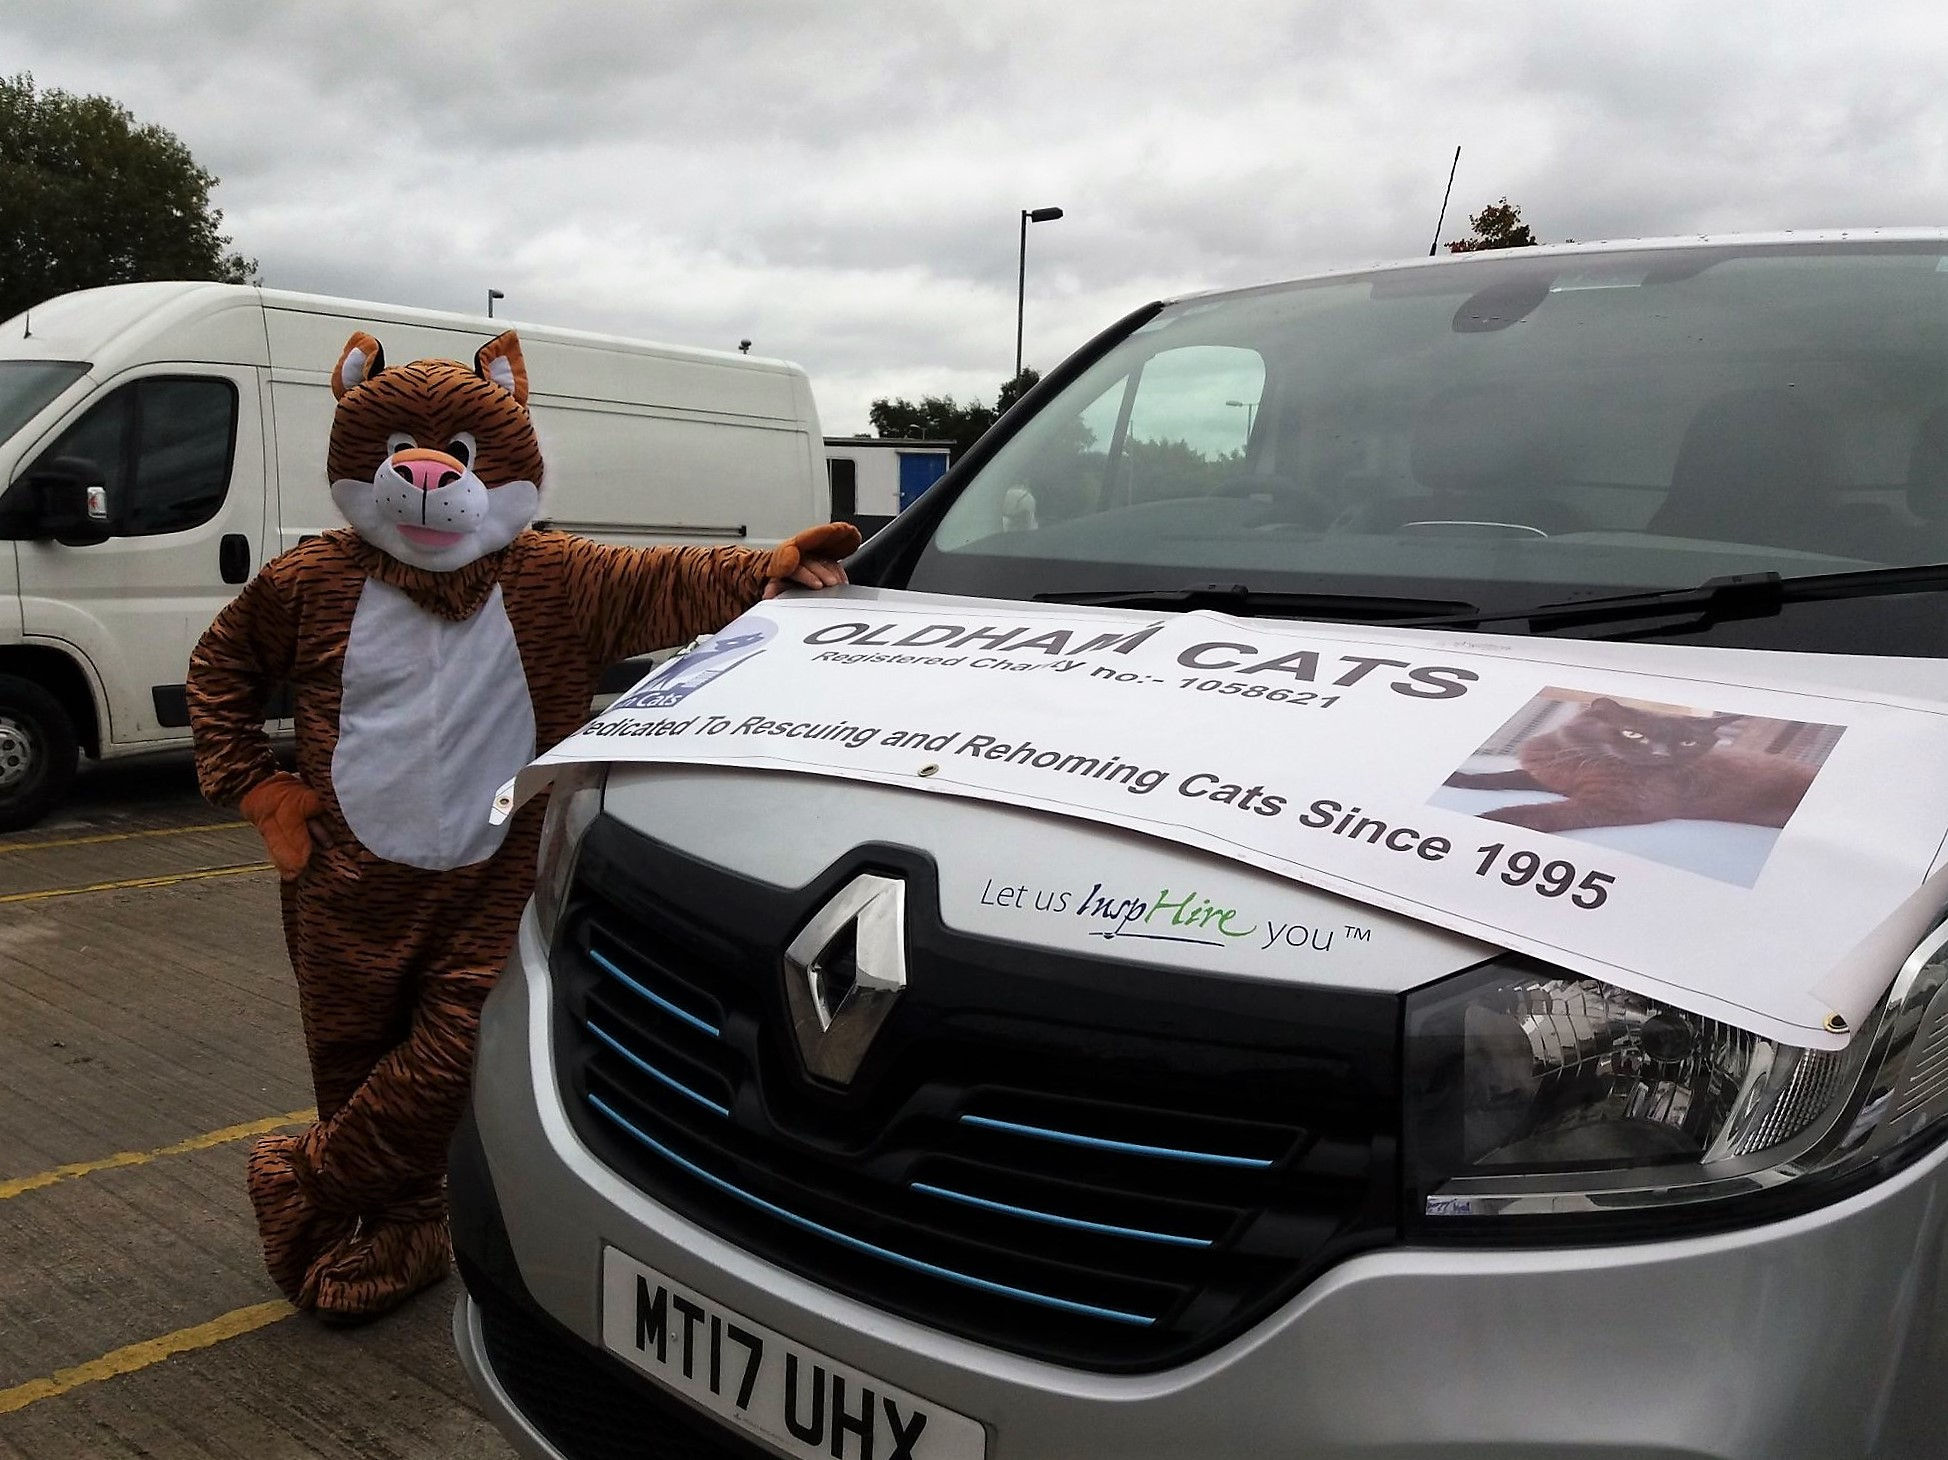 Oldham Cats Mascot Renault Trafic